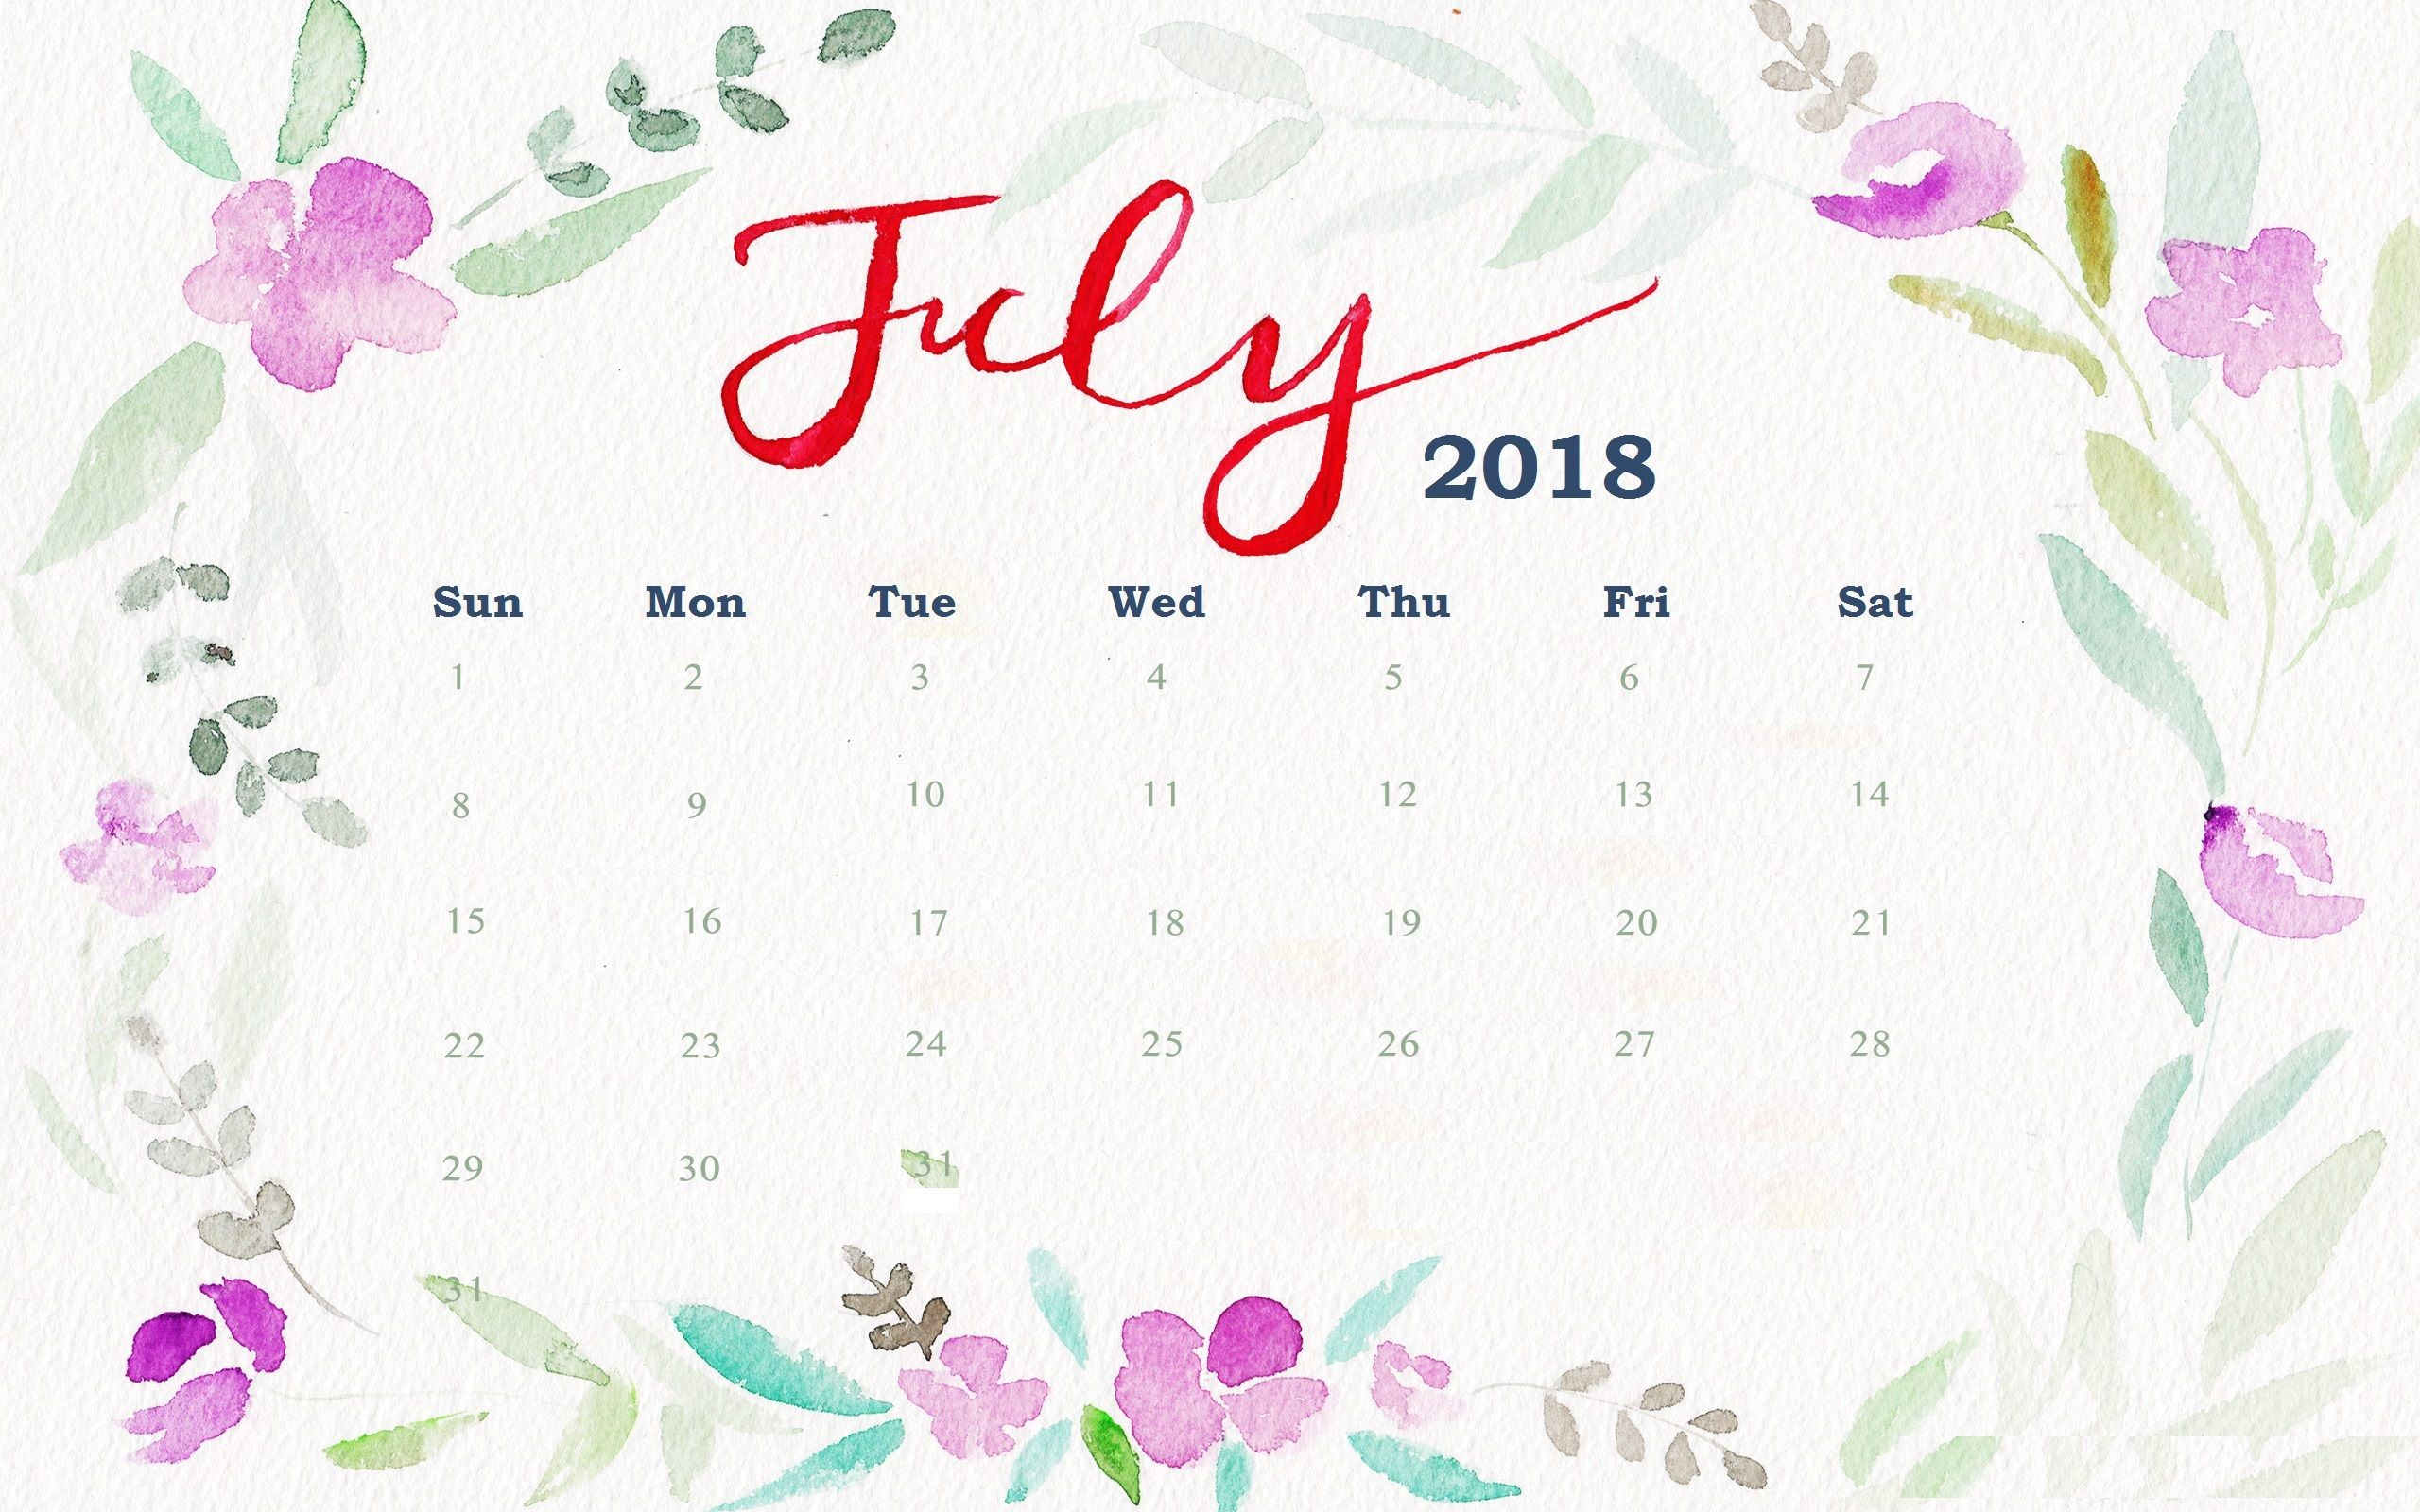 2560x1600 July 2018 Floral Desktop Calendar